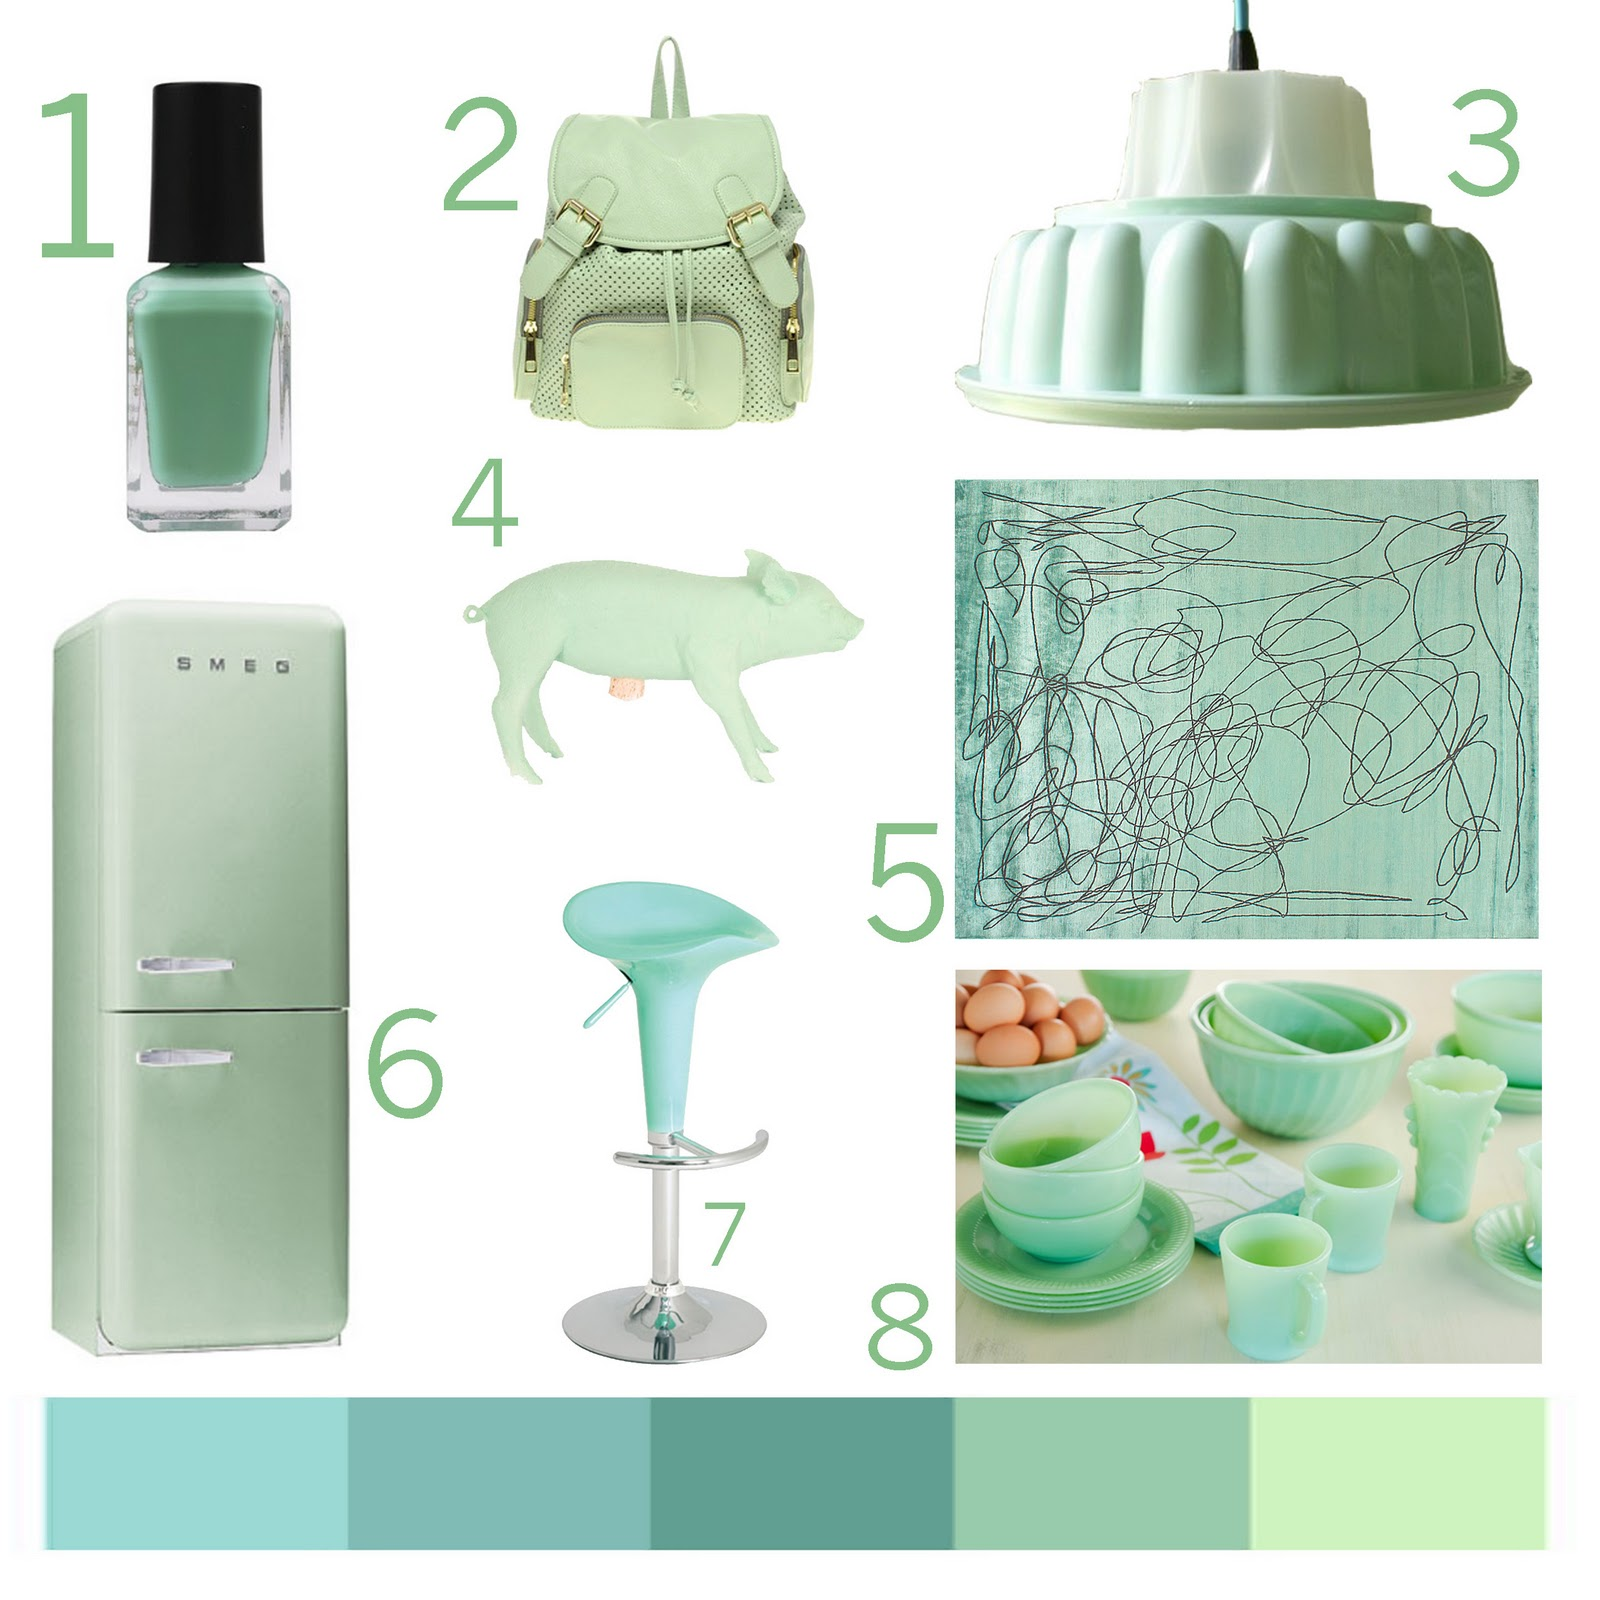 Pairstudio Very light mint green paint